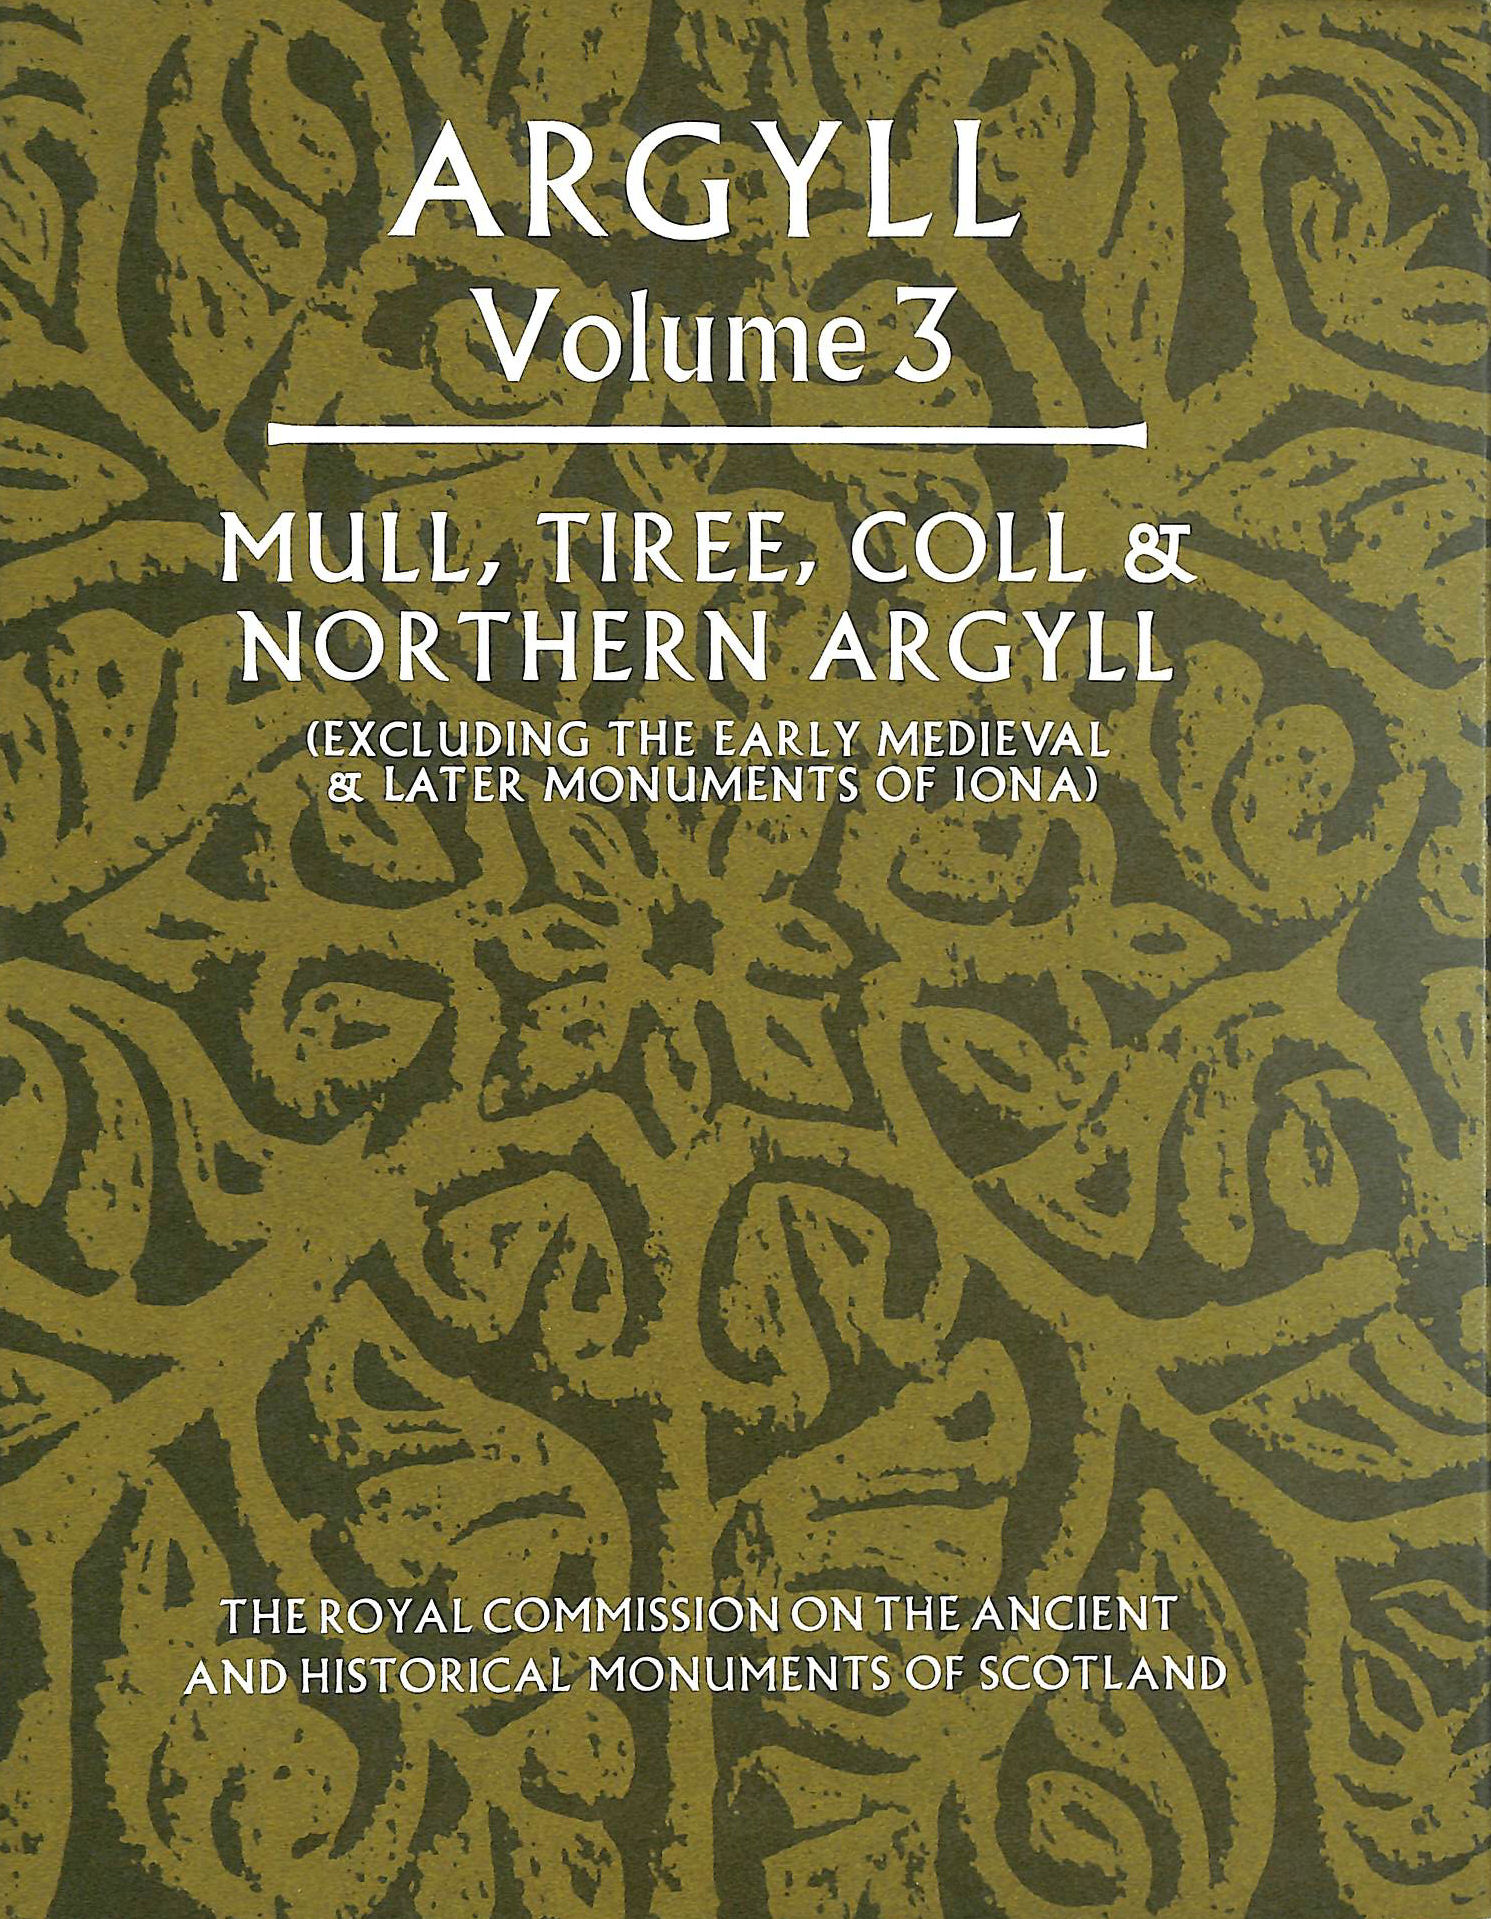 Image for Inventory of the Ancient Monuments: Mull, Tiree, Coll and Northern Argyll (Excluding the Early Medieval and Later Monuments of Iona) v.3: Mull, Tiree,  Medieval and Later Monuments of Iona) Vol 3